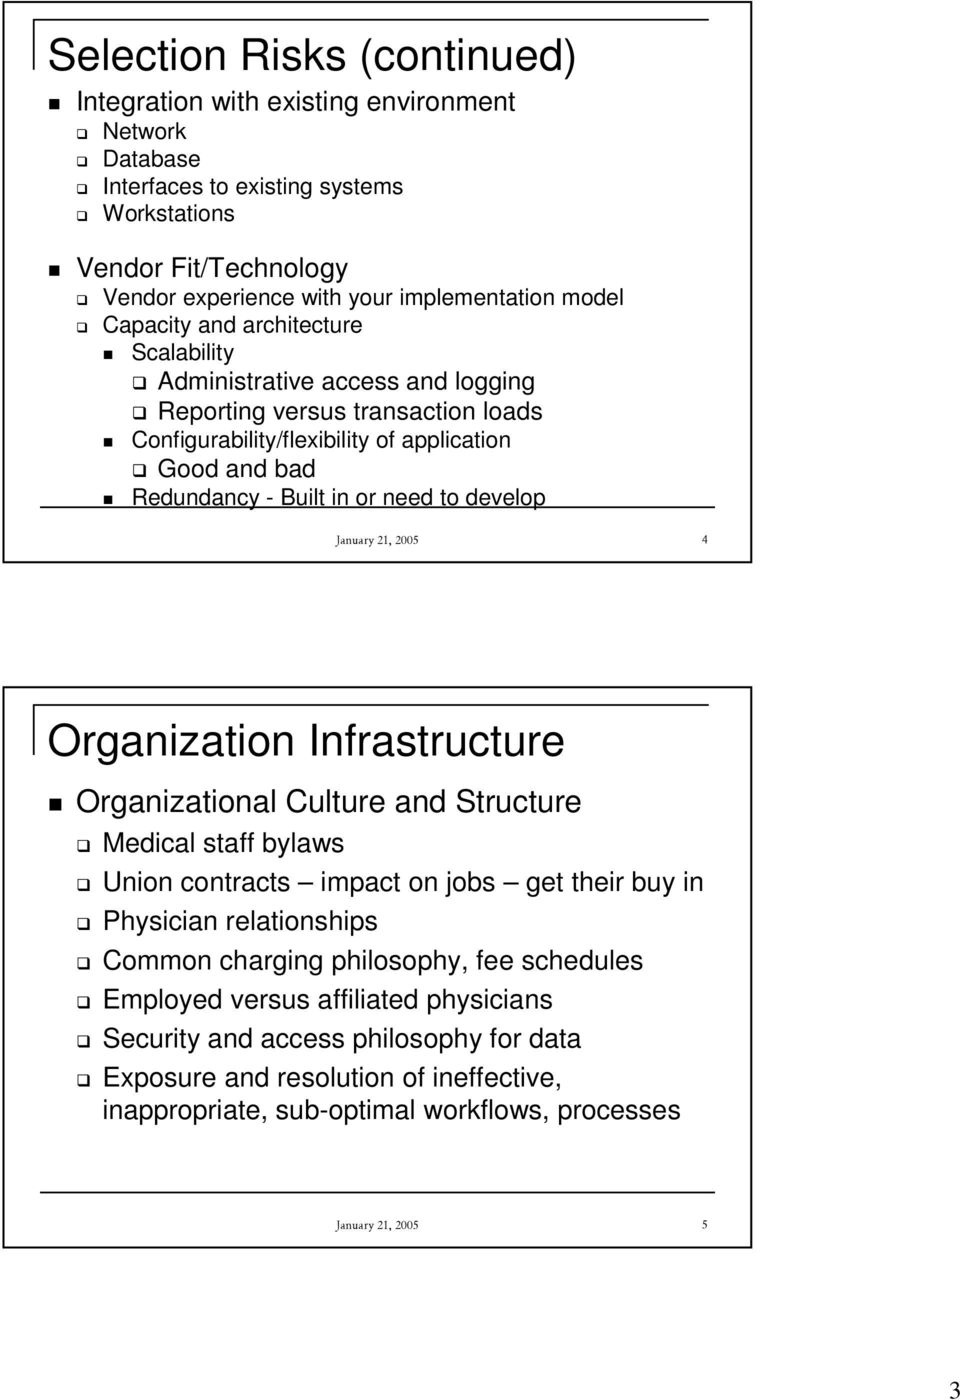 develop January 21, 2005 4 Organization Infrastructure Organizational Culture and Structure Medical staff bylaws Union contracts impact on jobs get their buy in Physician relationships Common